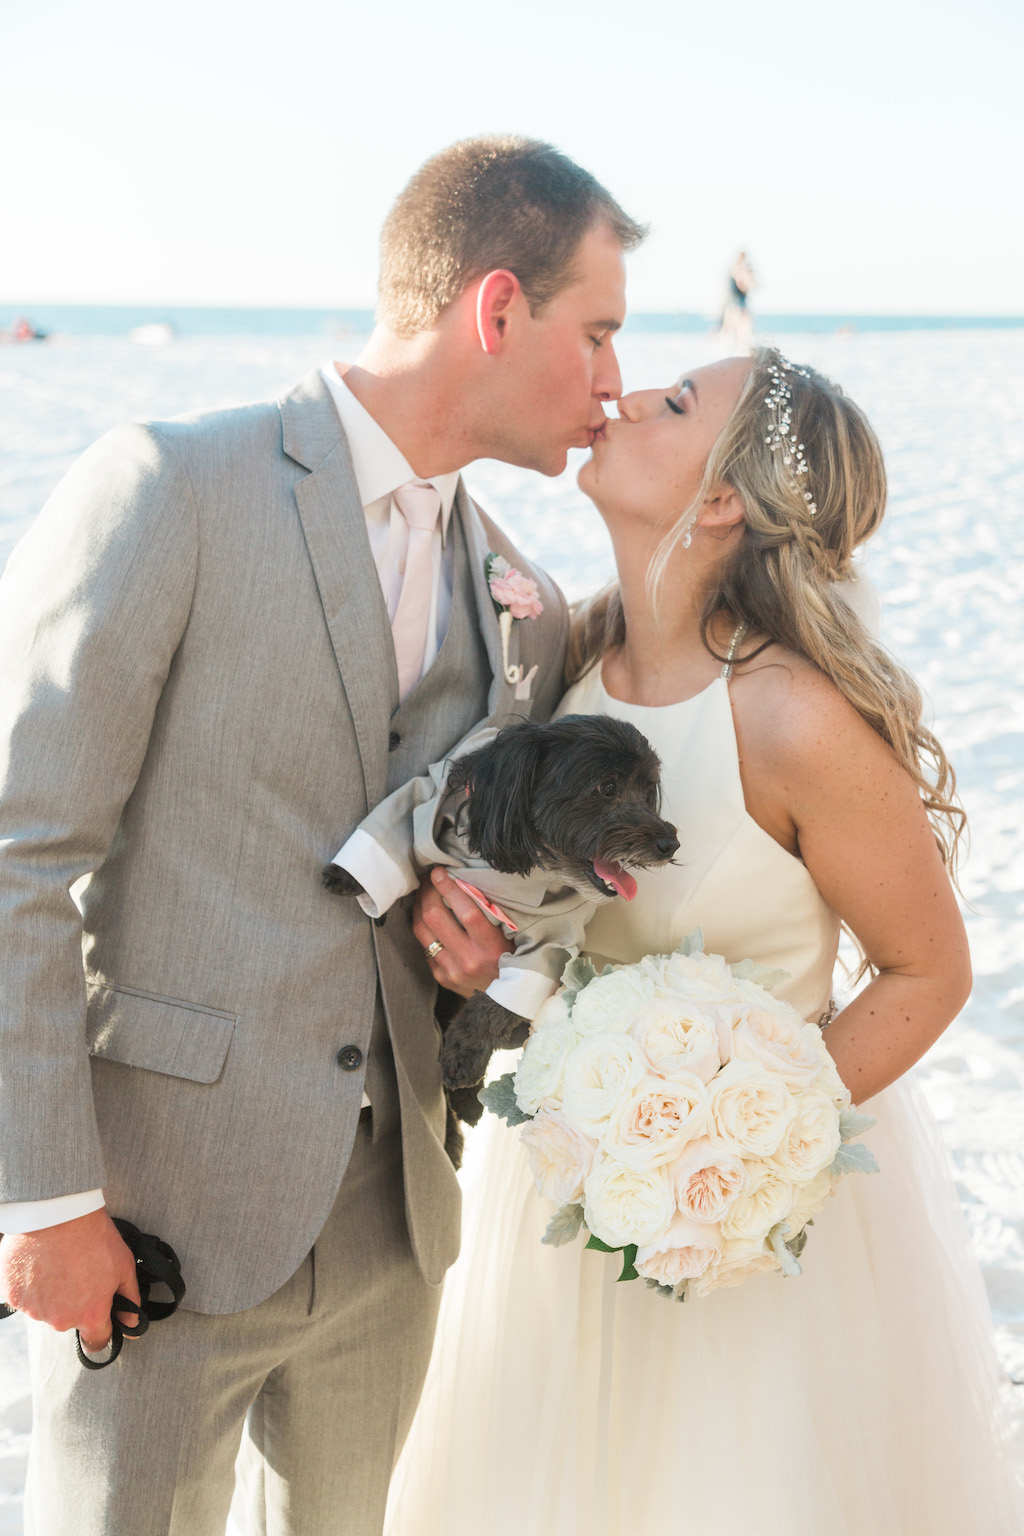 Outdoor Beach Wedding Bride and Groom Portrait With Dog wearing Mini Gray Suit, Groom in Gray Suit with BLush PInk Tie and Rose Boutonniere, Bride in Halter Ballgown Hayley Paige Wedding Dress with White Rose Bouquet and Jeweled Headband   Whimsical Clearwater BeachWedding